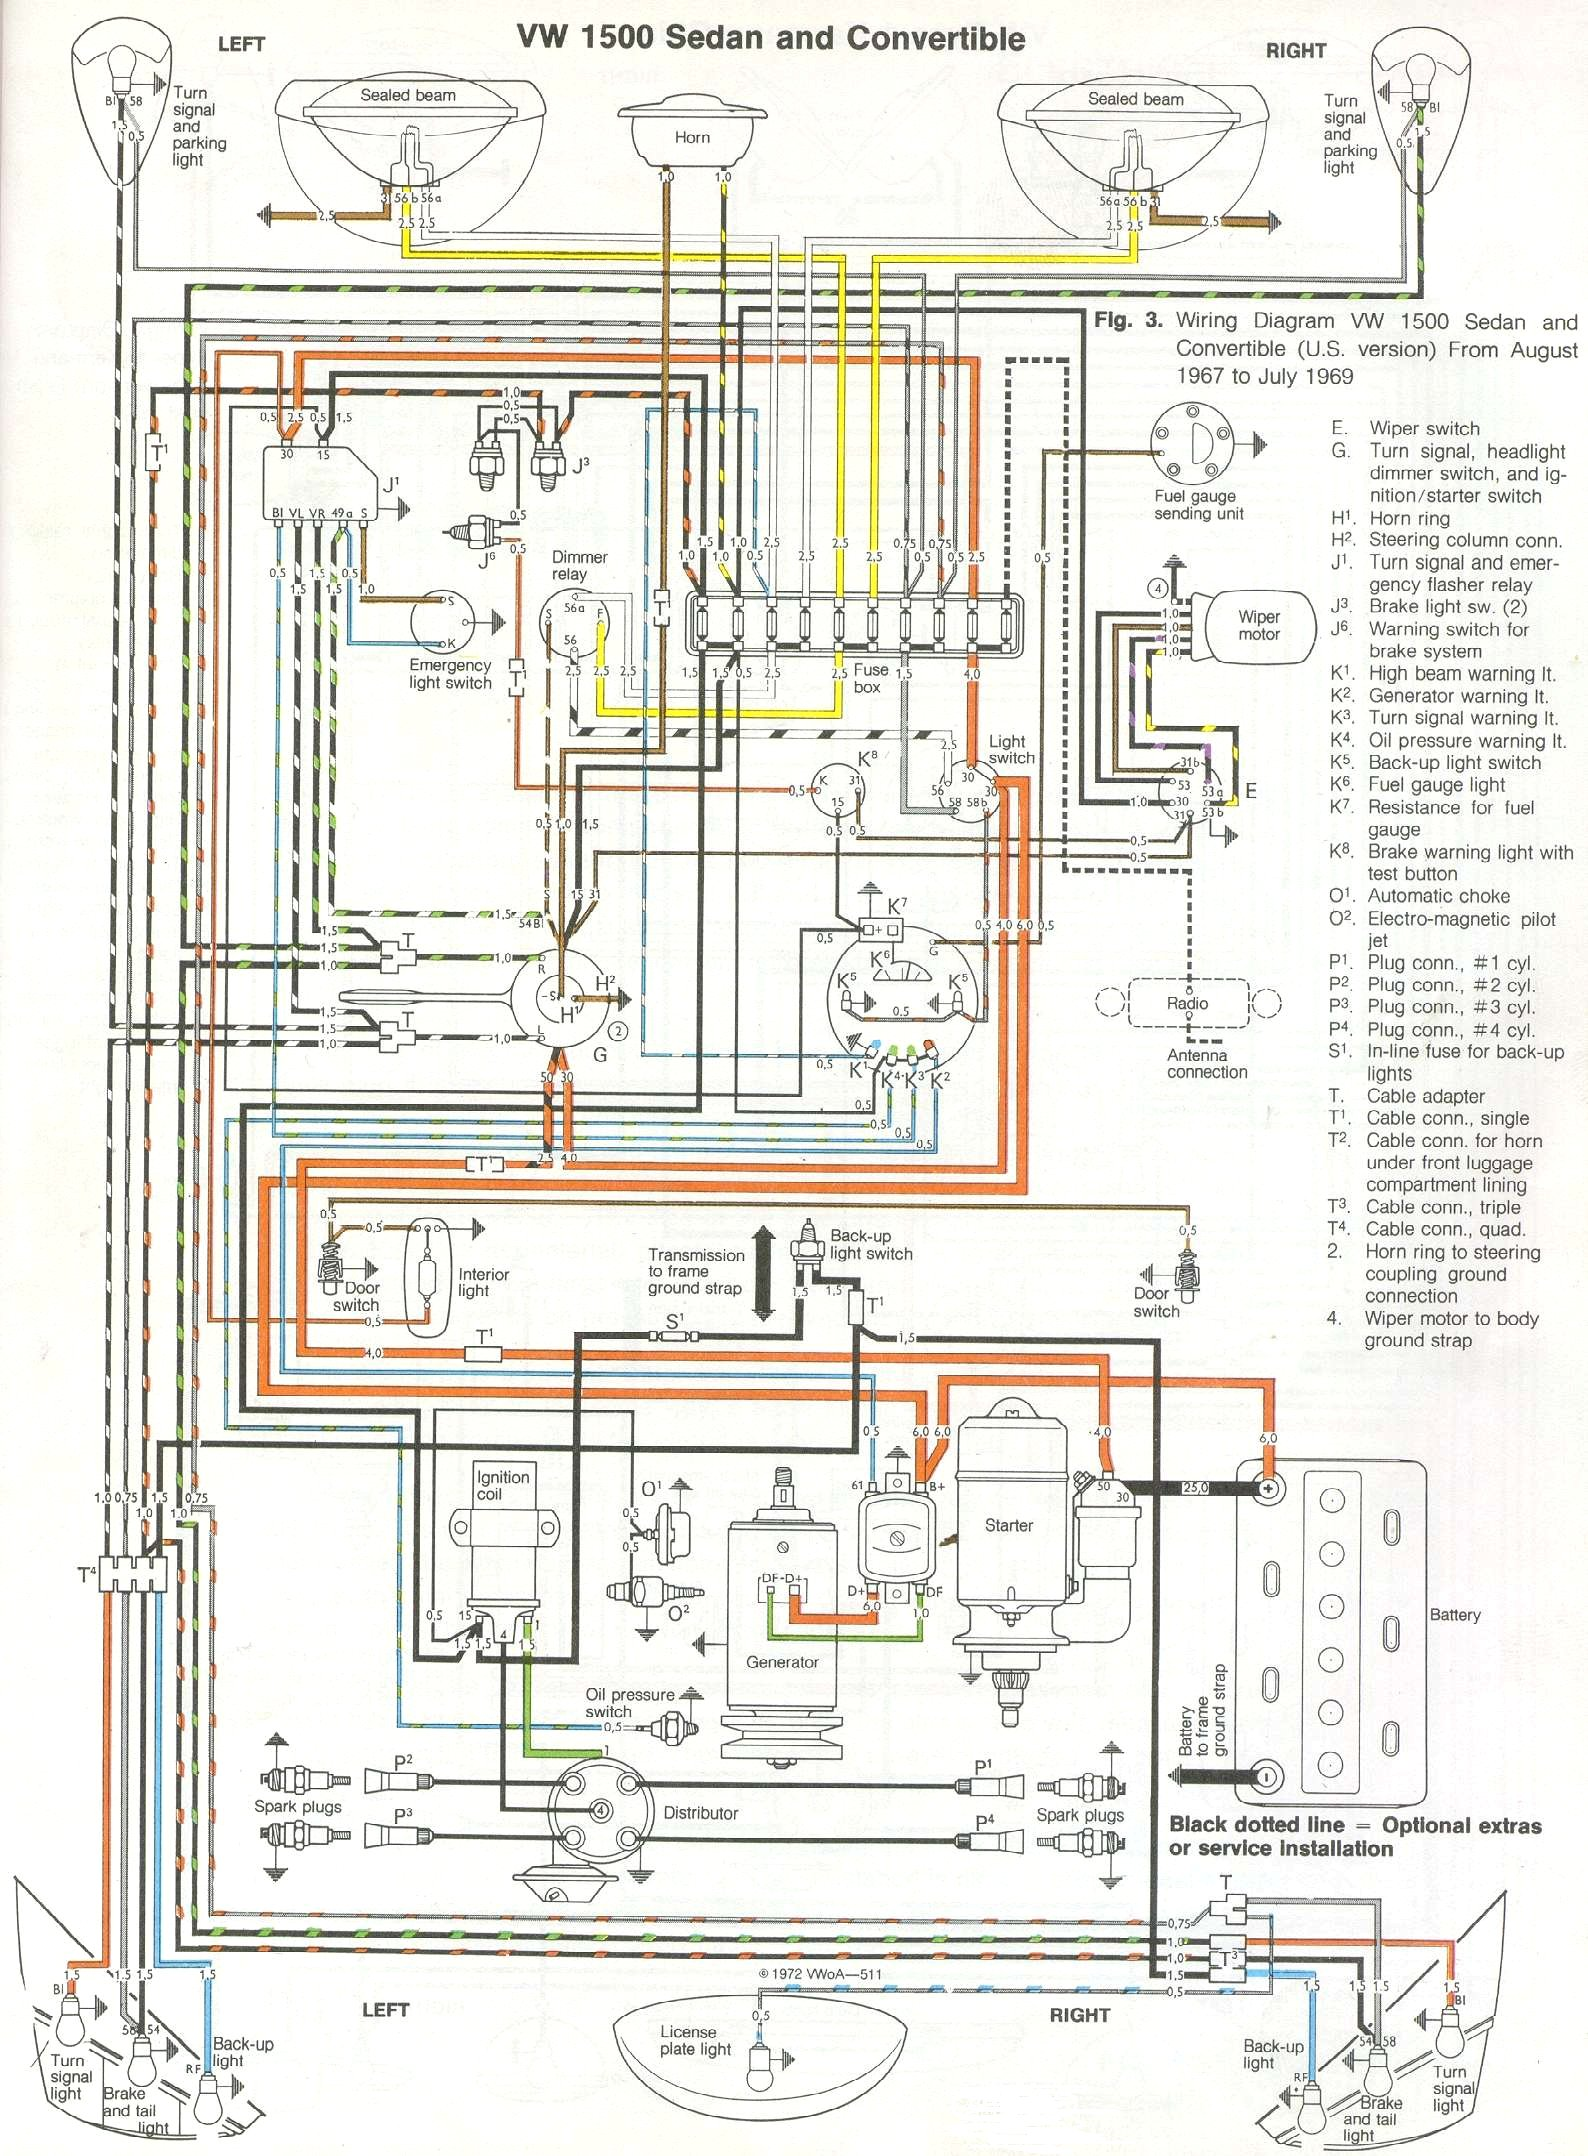 bug_6869 1969 71 beetle wiring diagram thegoldenbug com 1970 vw beetle wiring schematic at n-0.co